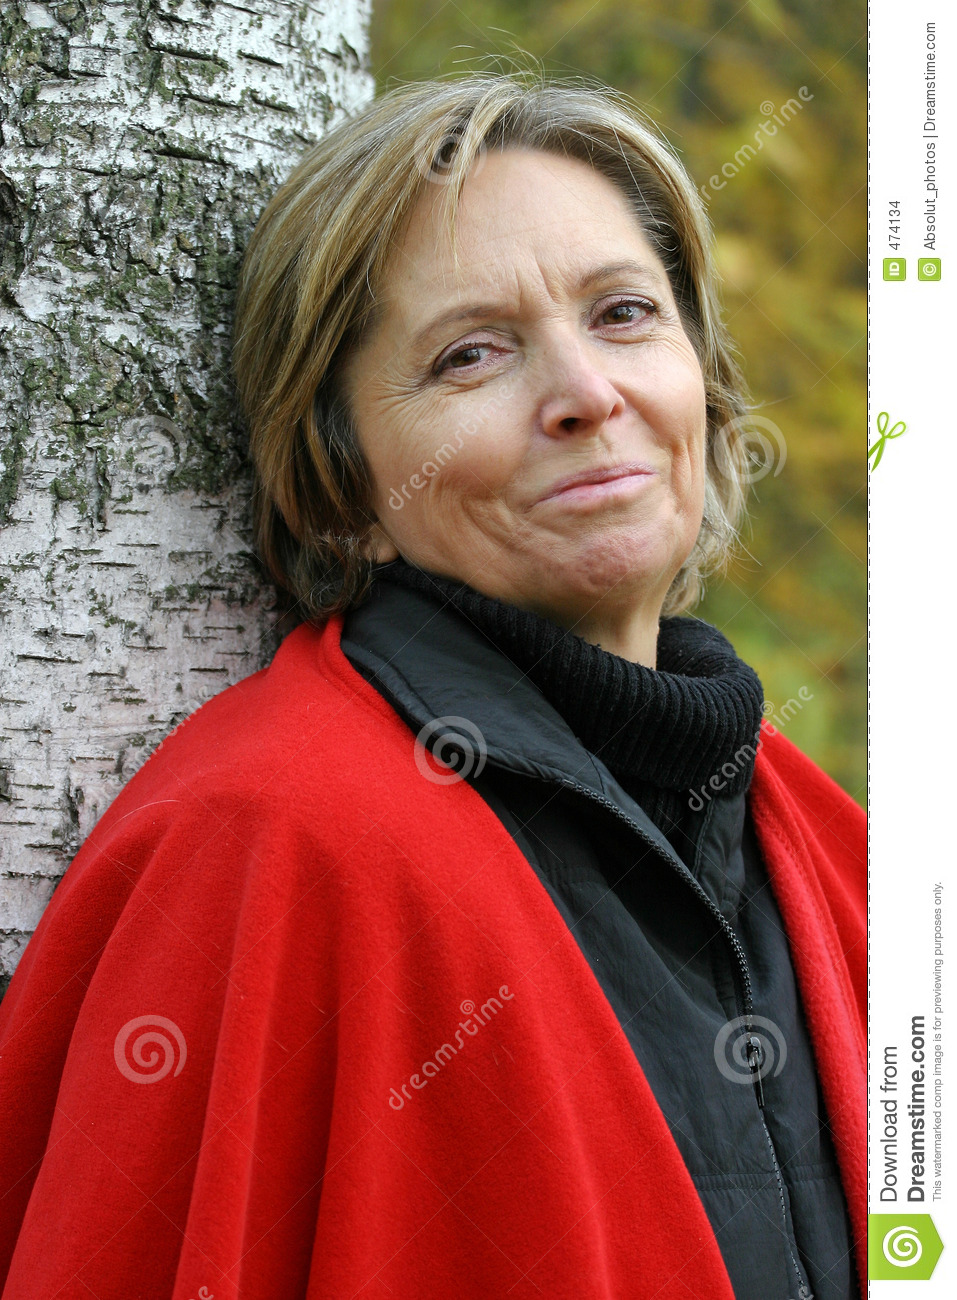 Woman in her fifties standing by the tree